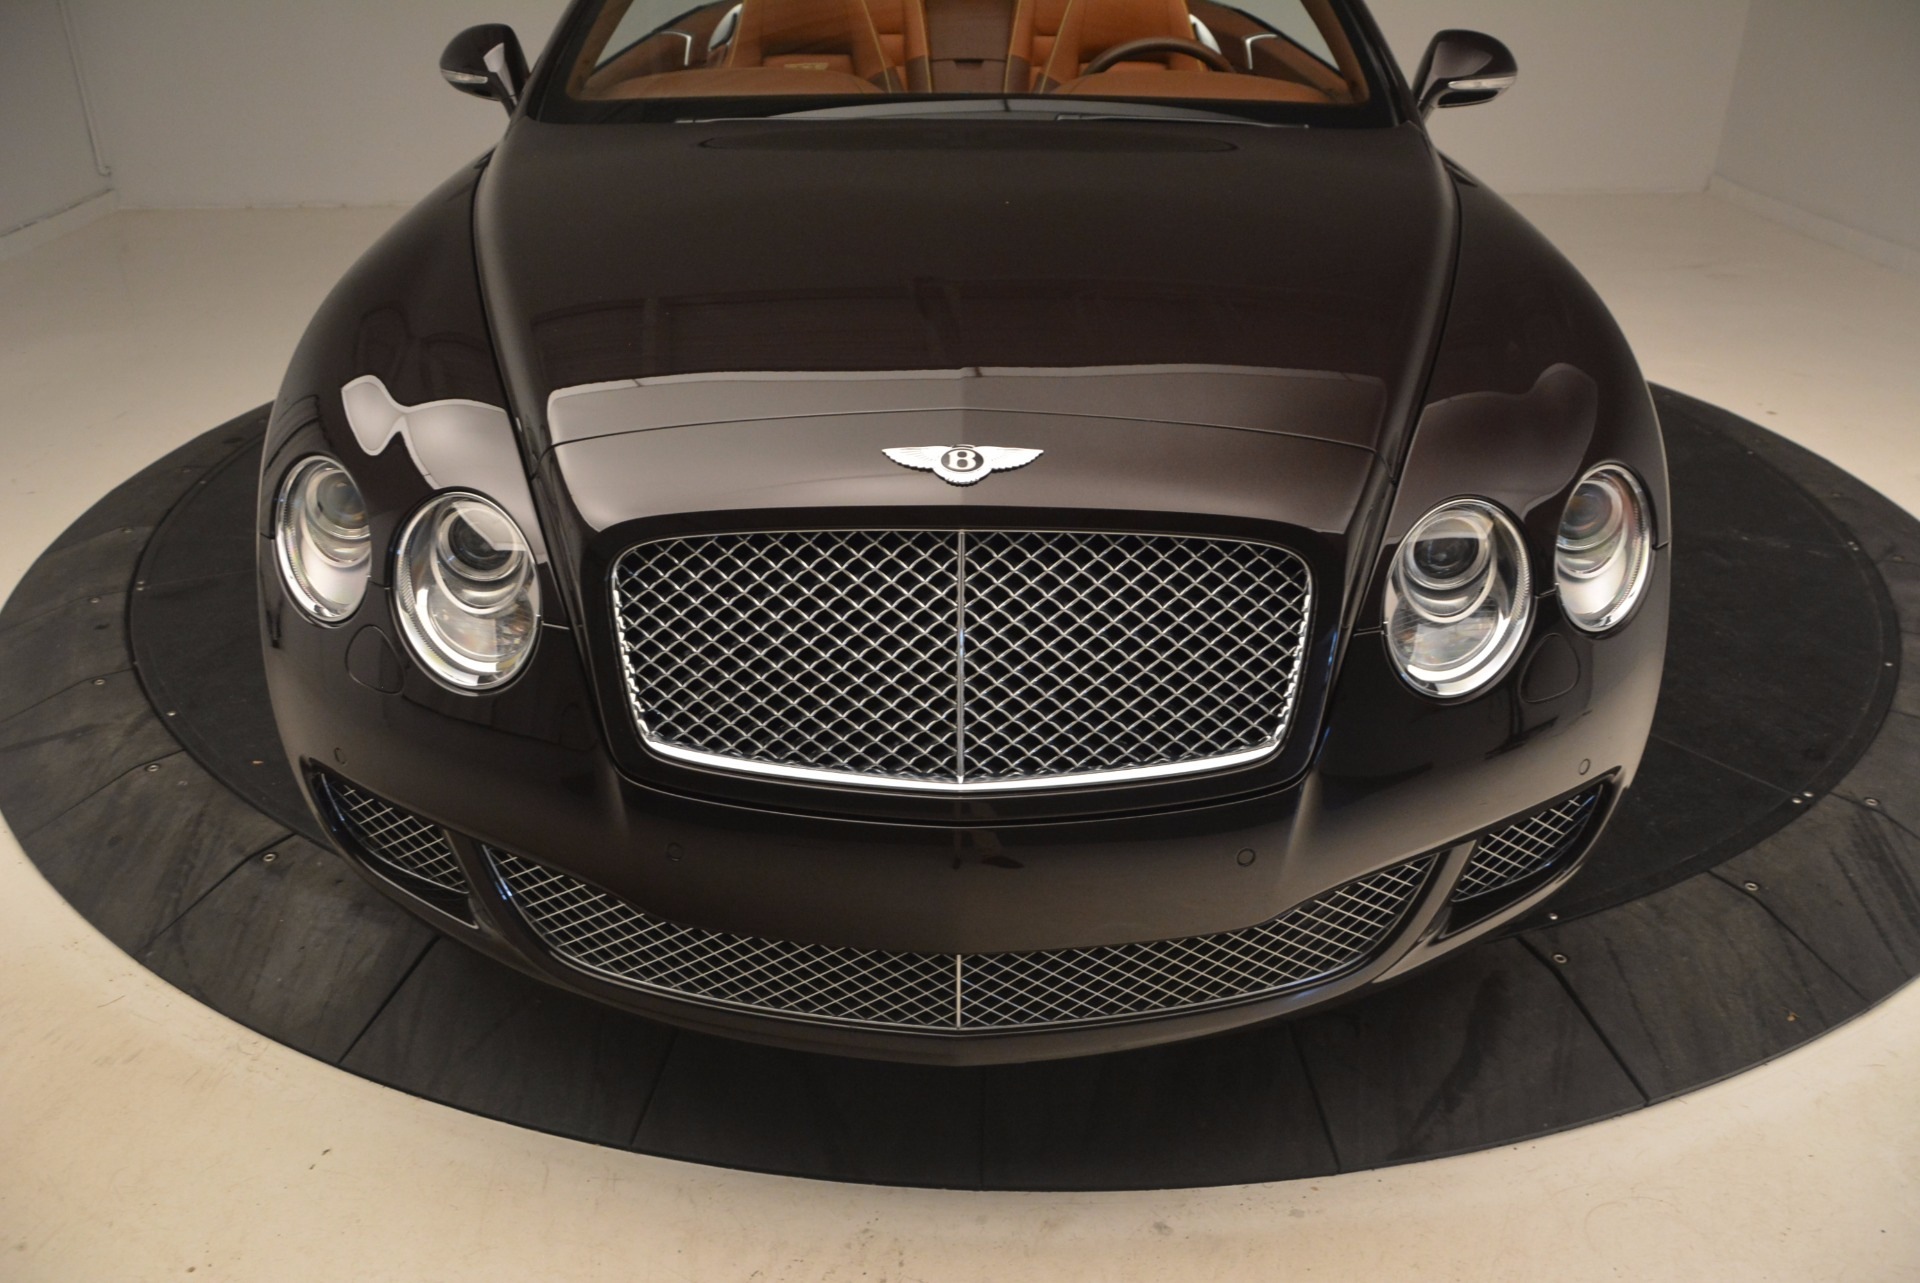 Used 2010 Bentley Continental GT Series 51 For Sale In Greenwich, CT. Alfa Romeo of Greenwich, 7219 1222_p26